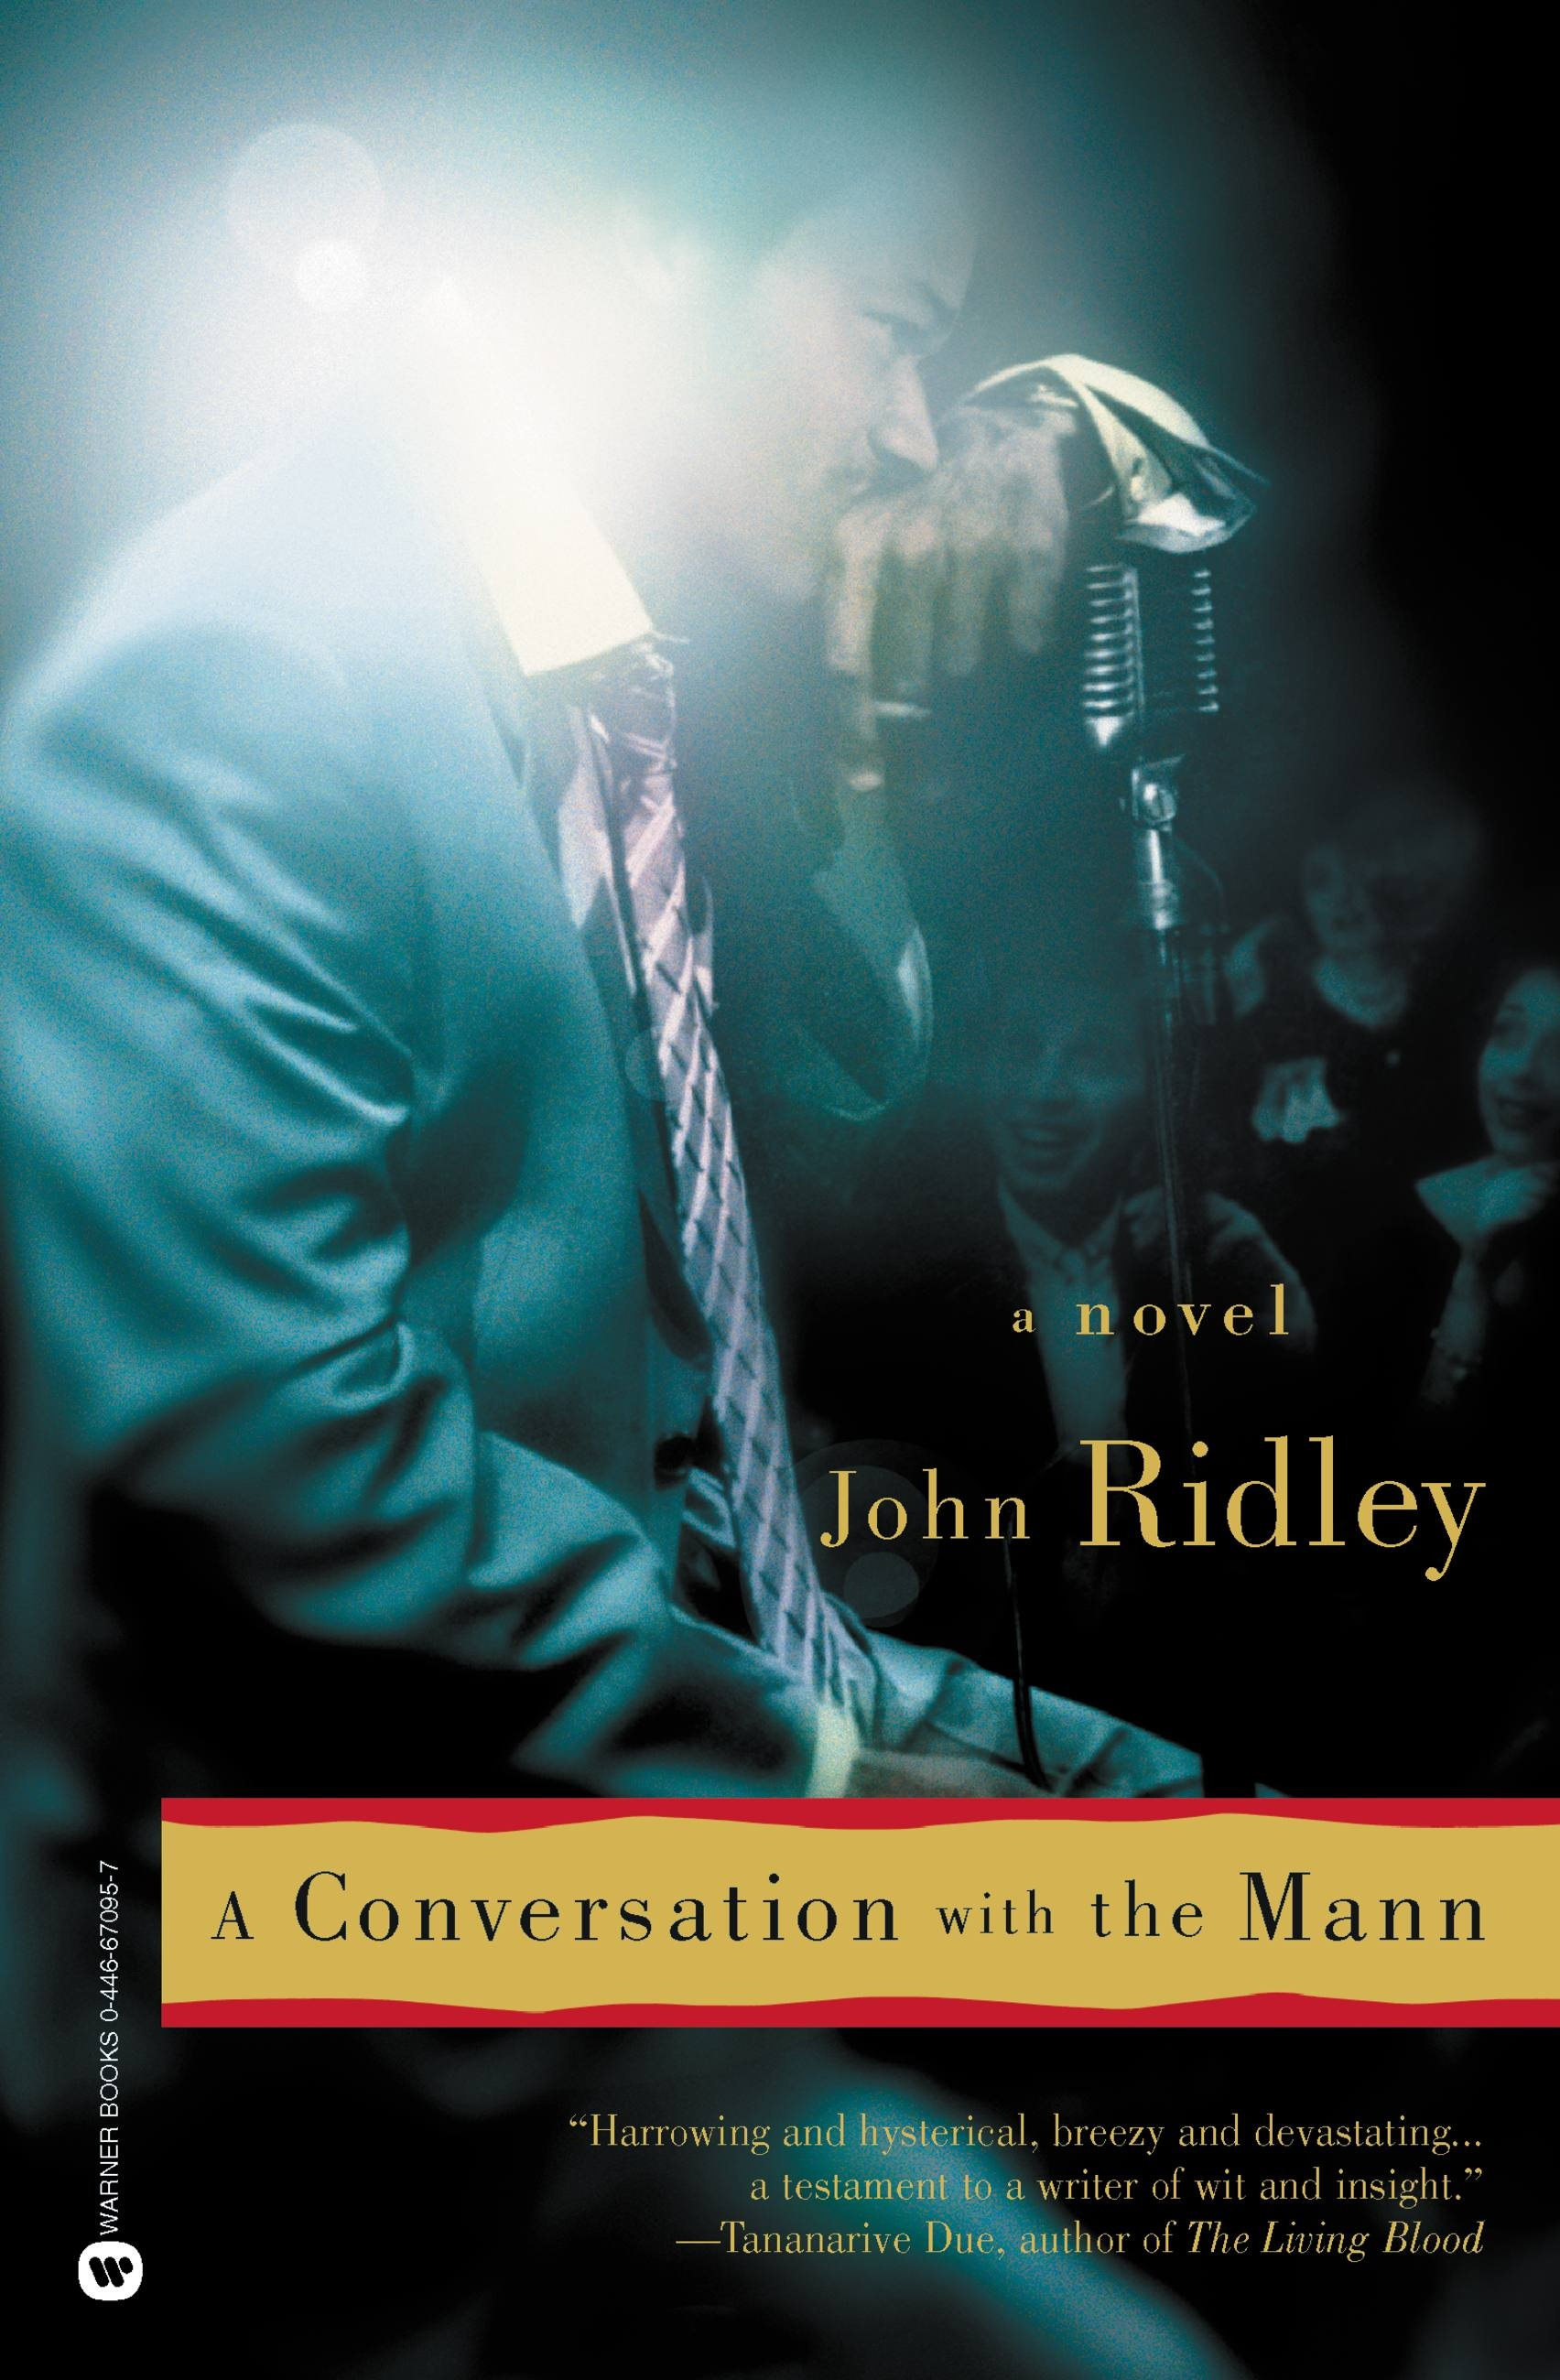 A Conversation with the MannA